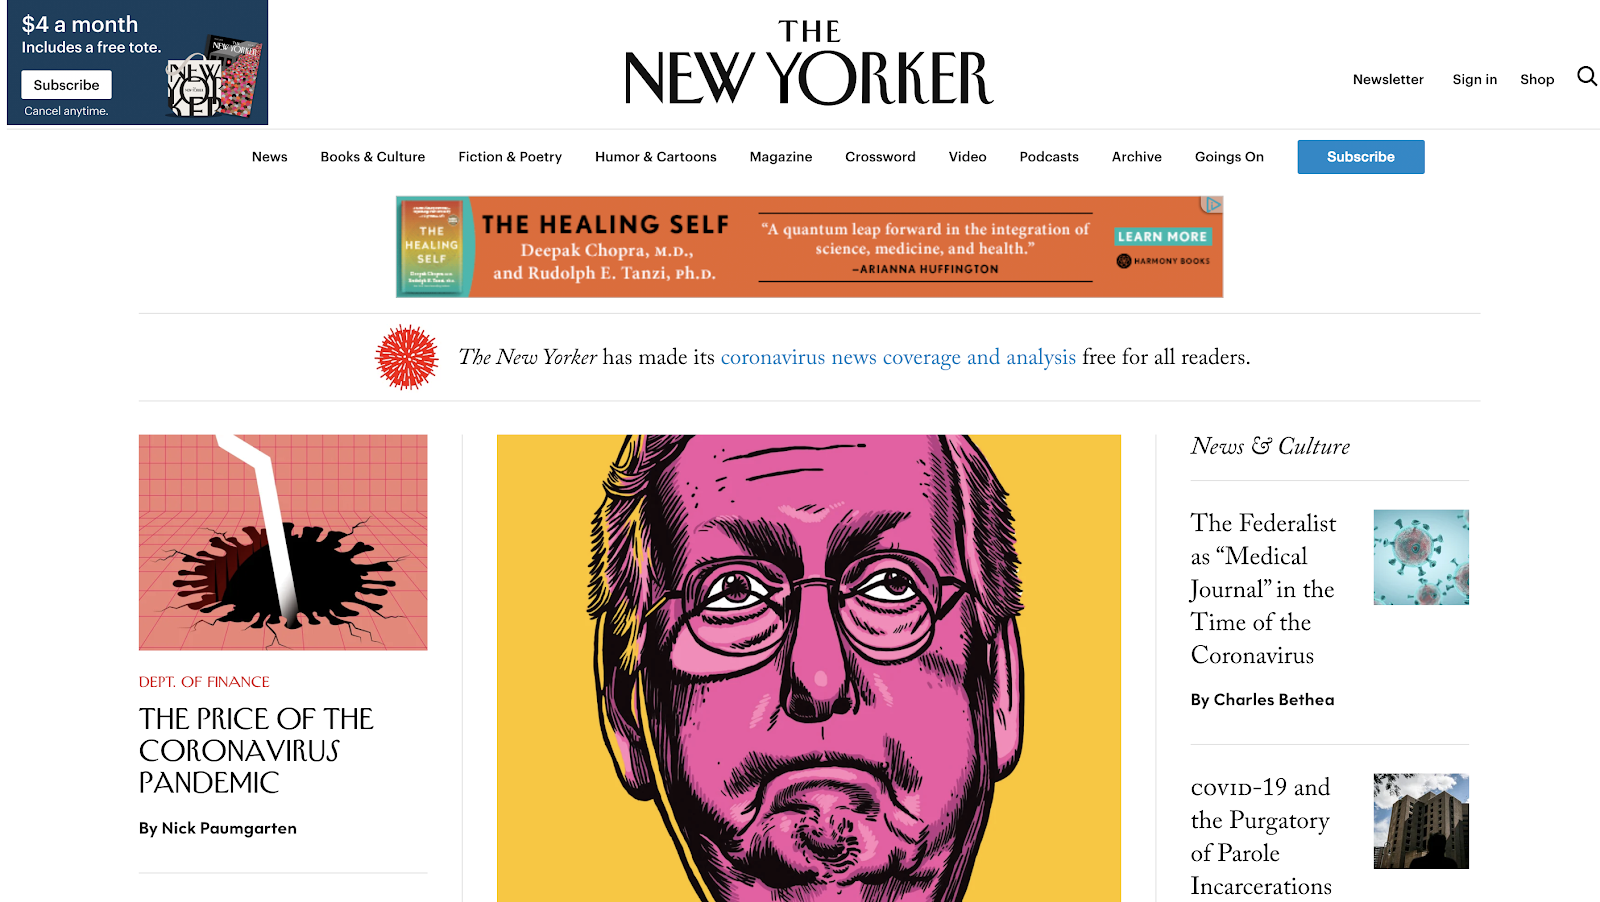 The New Yorker Homepage Screenshot (Blog Layout Examples)